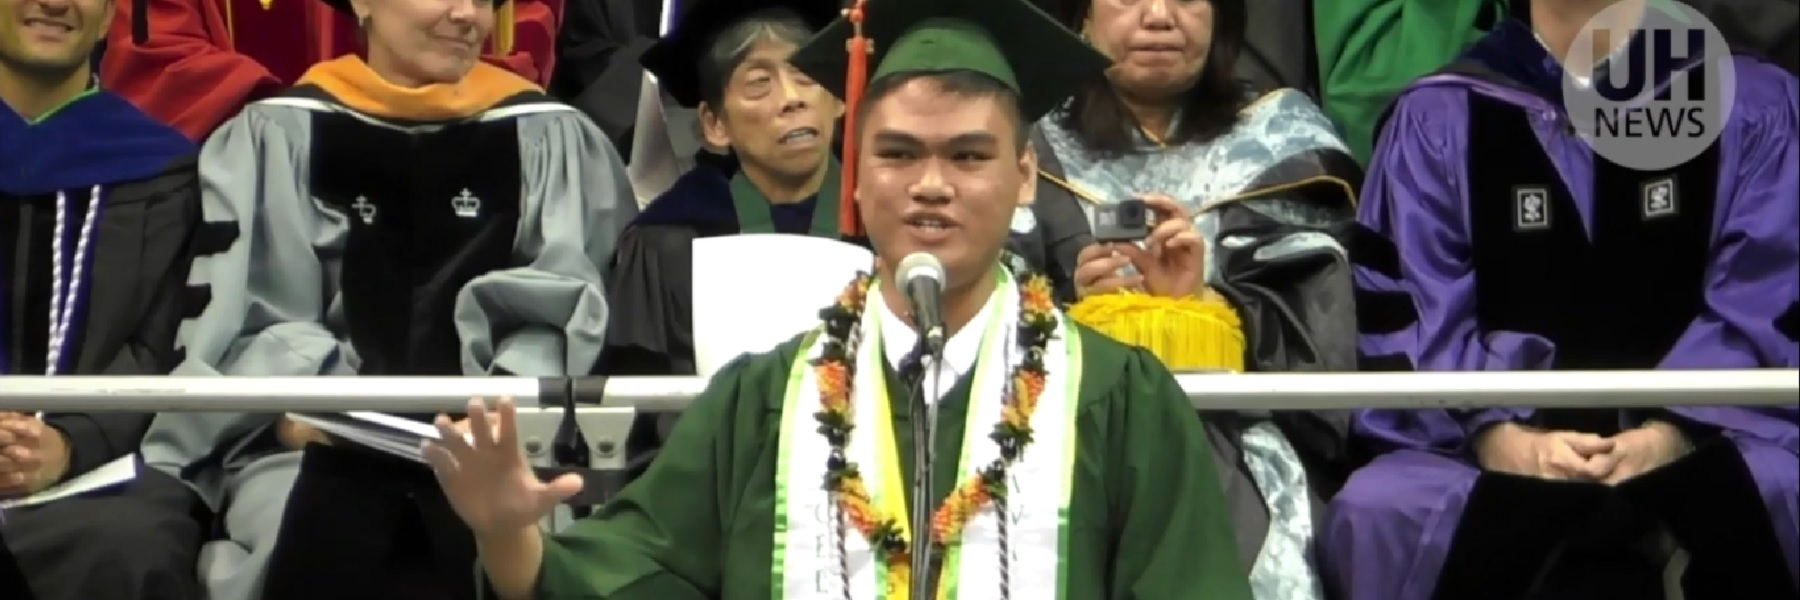 Engineering Graduate Moves Crowd To Tears At Commencement Ceremony